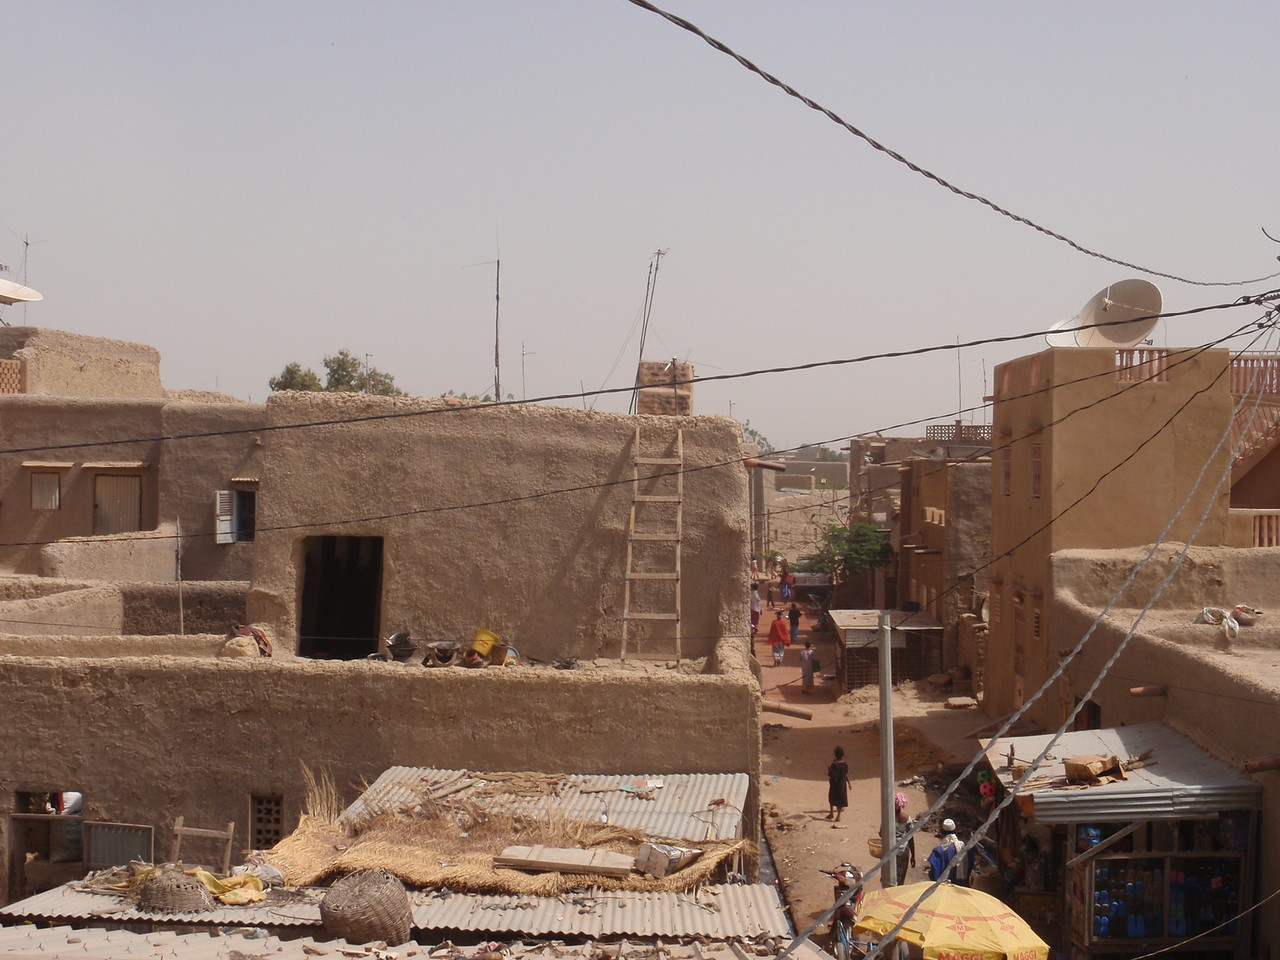 283_Mopti  The Colourful Old Town  Rooftop City Overview